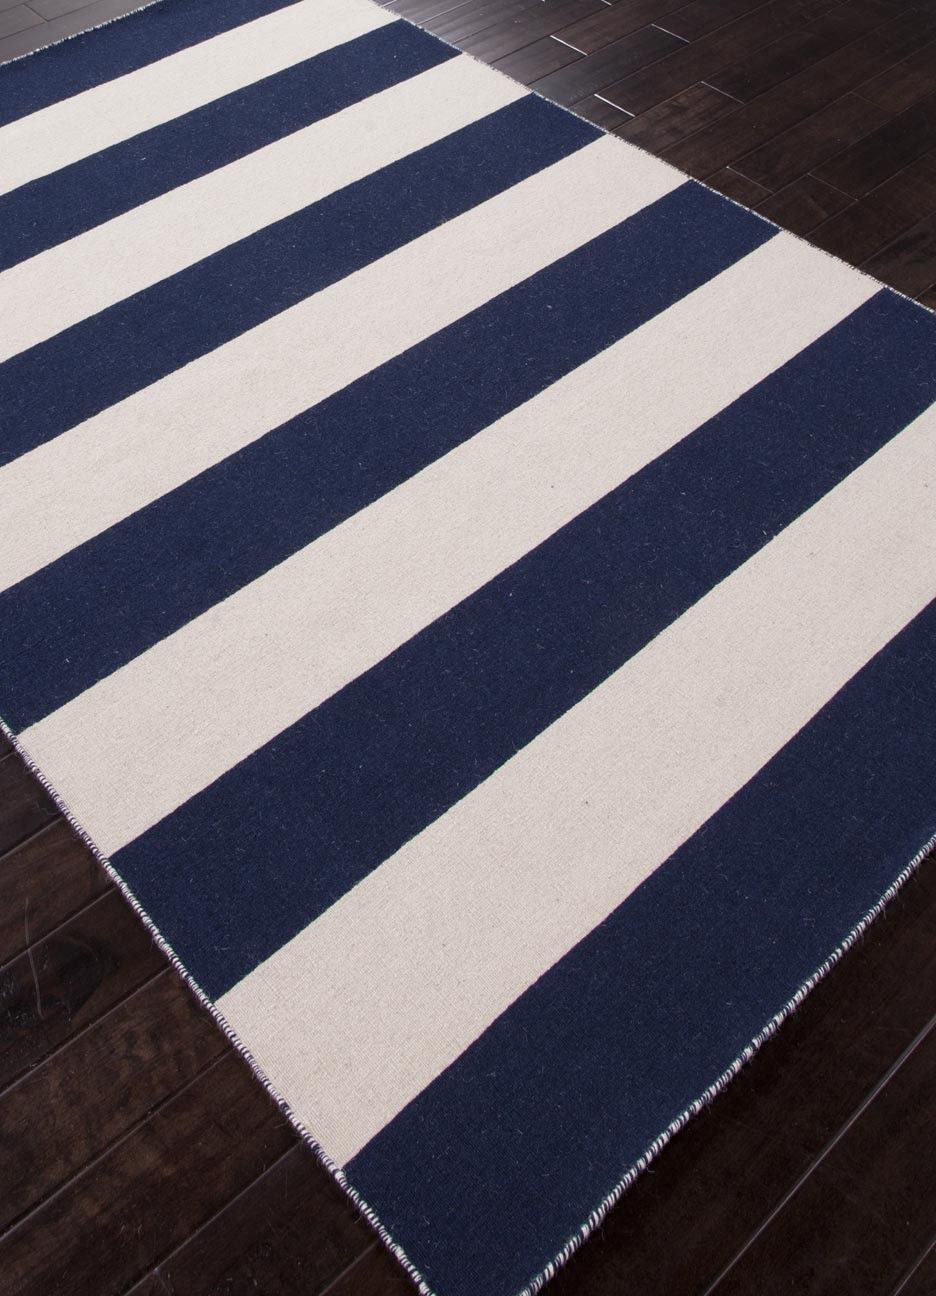 Tierra Collection From Jaipur Dark Blue And White Ice Striped Area Rug